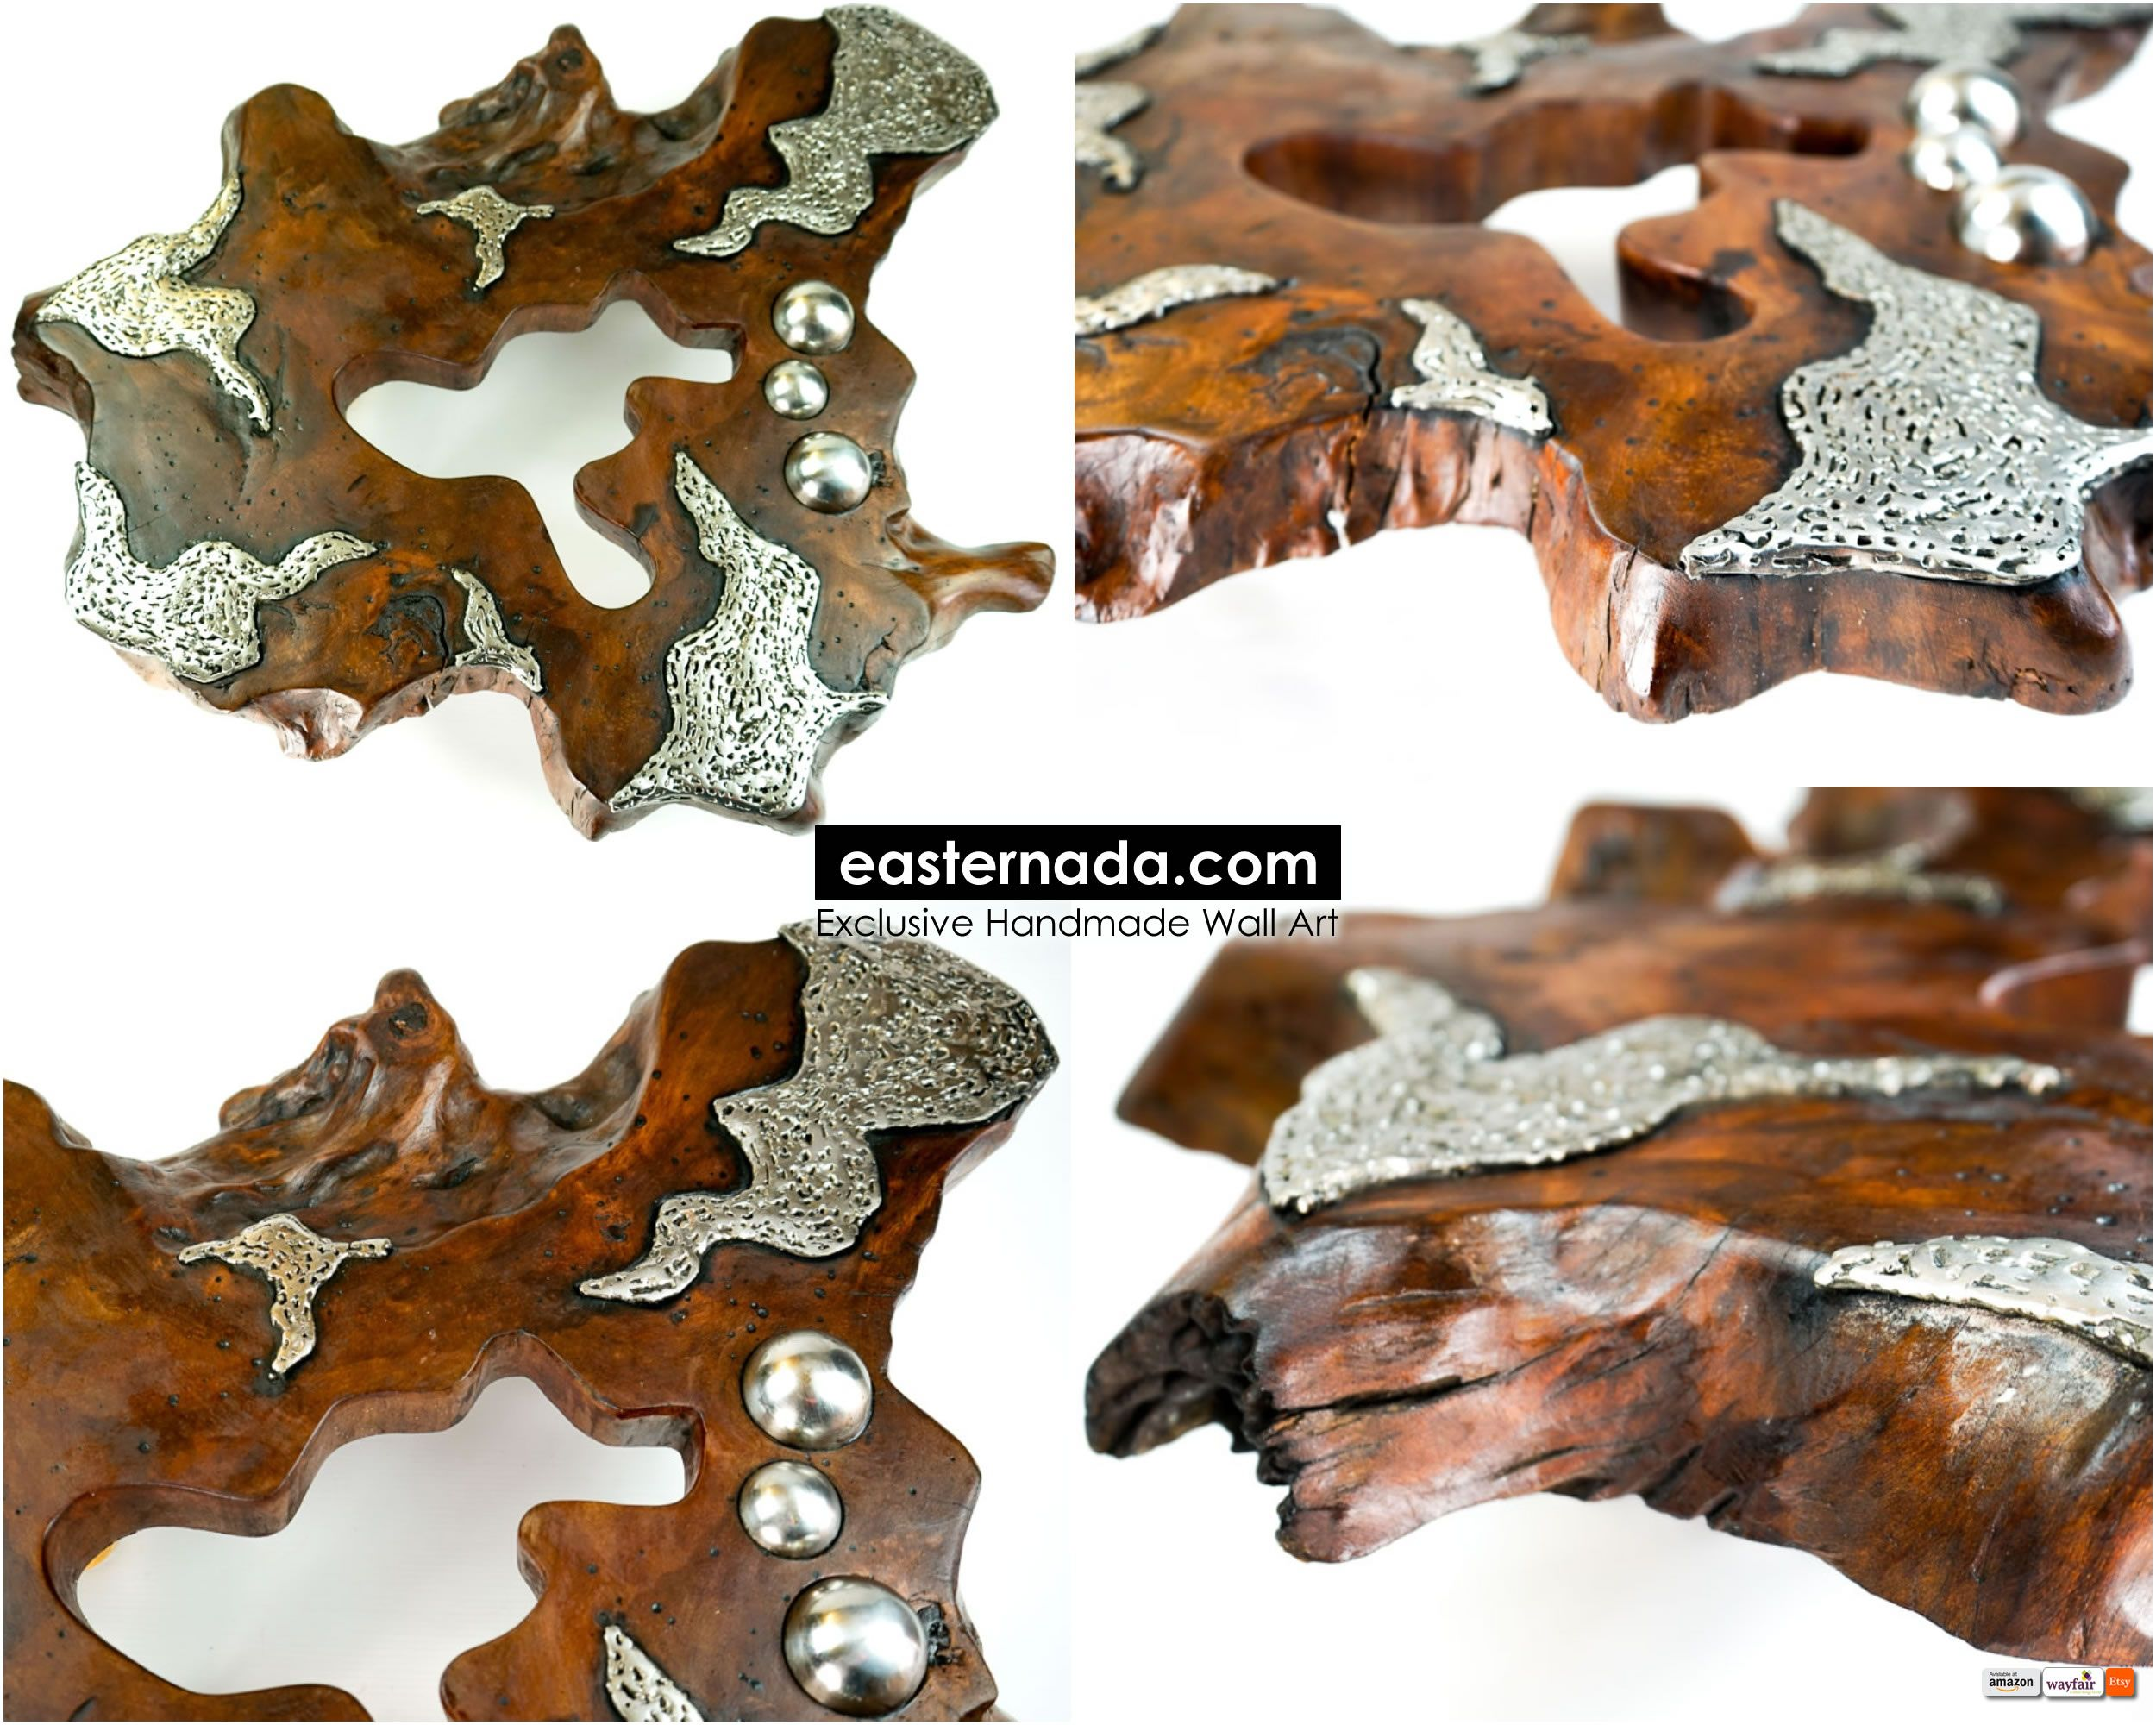 A fusion of traditional and modern art combining natural wood with